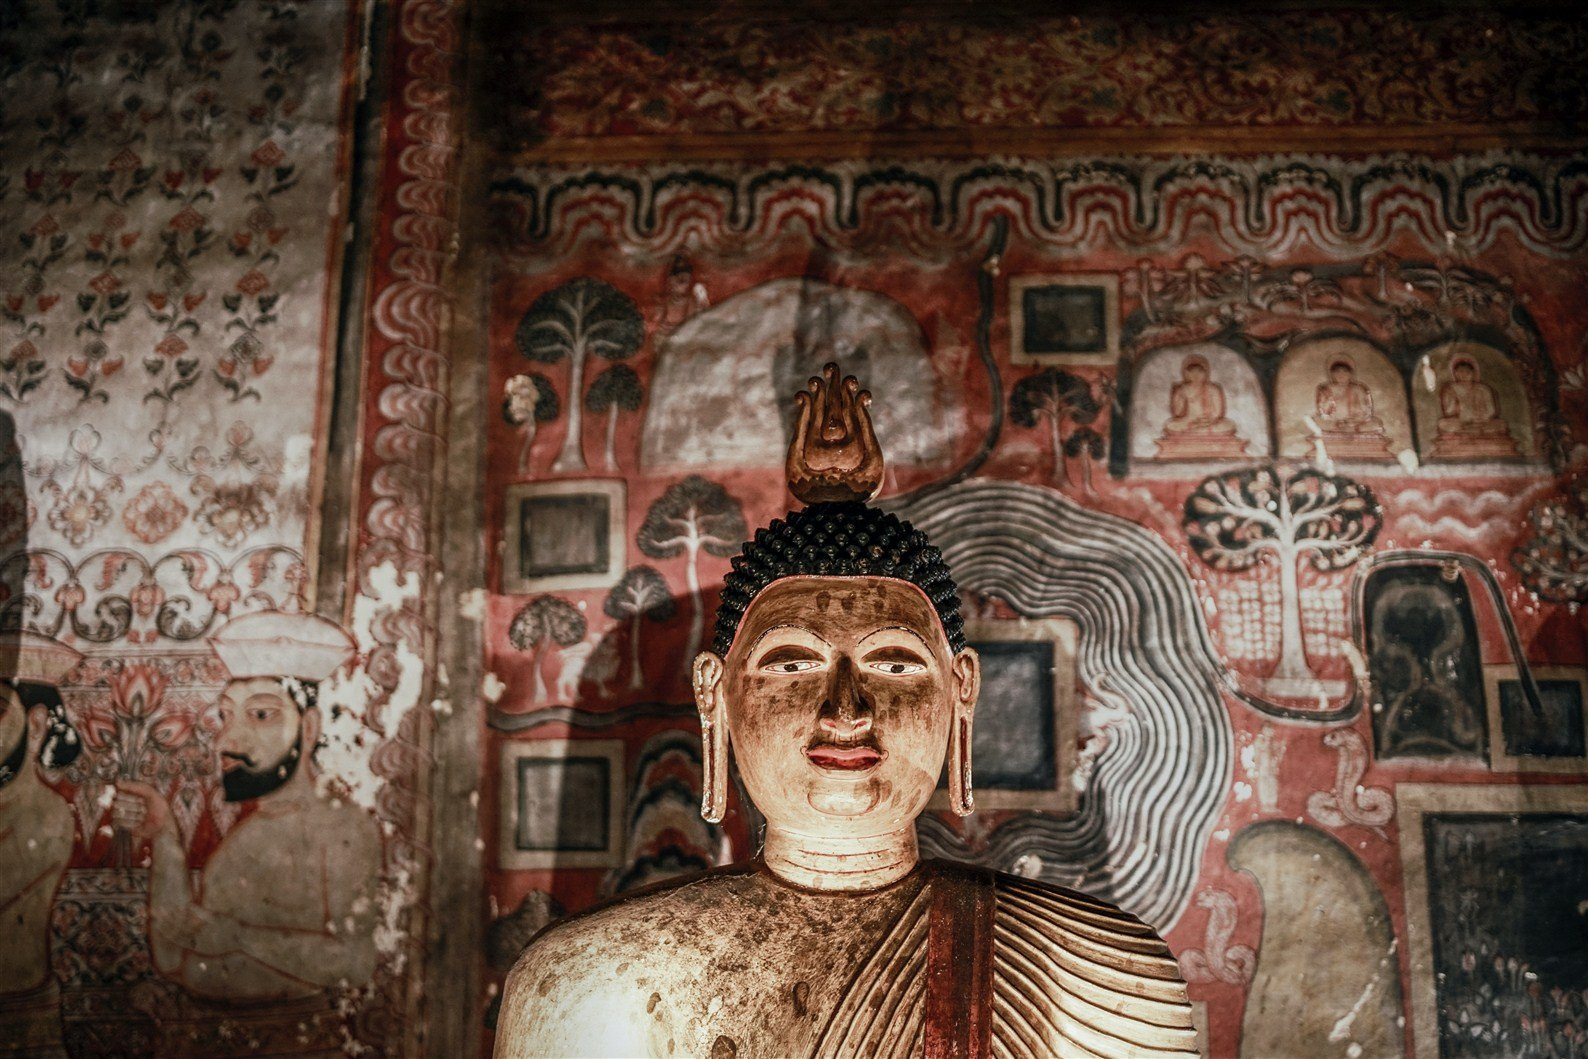 sri lanka ancient paintings at dambulla cave temple | paintings tours